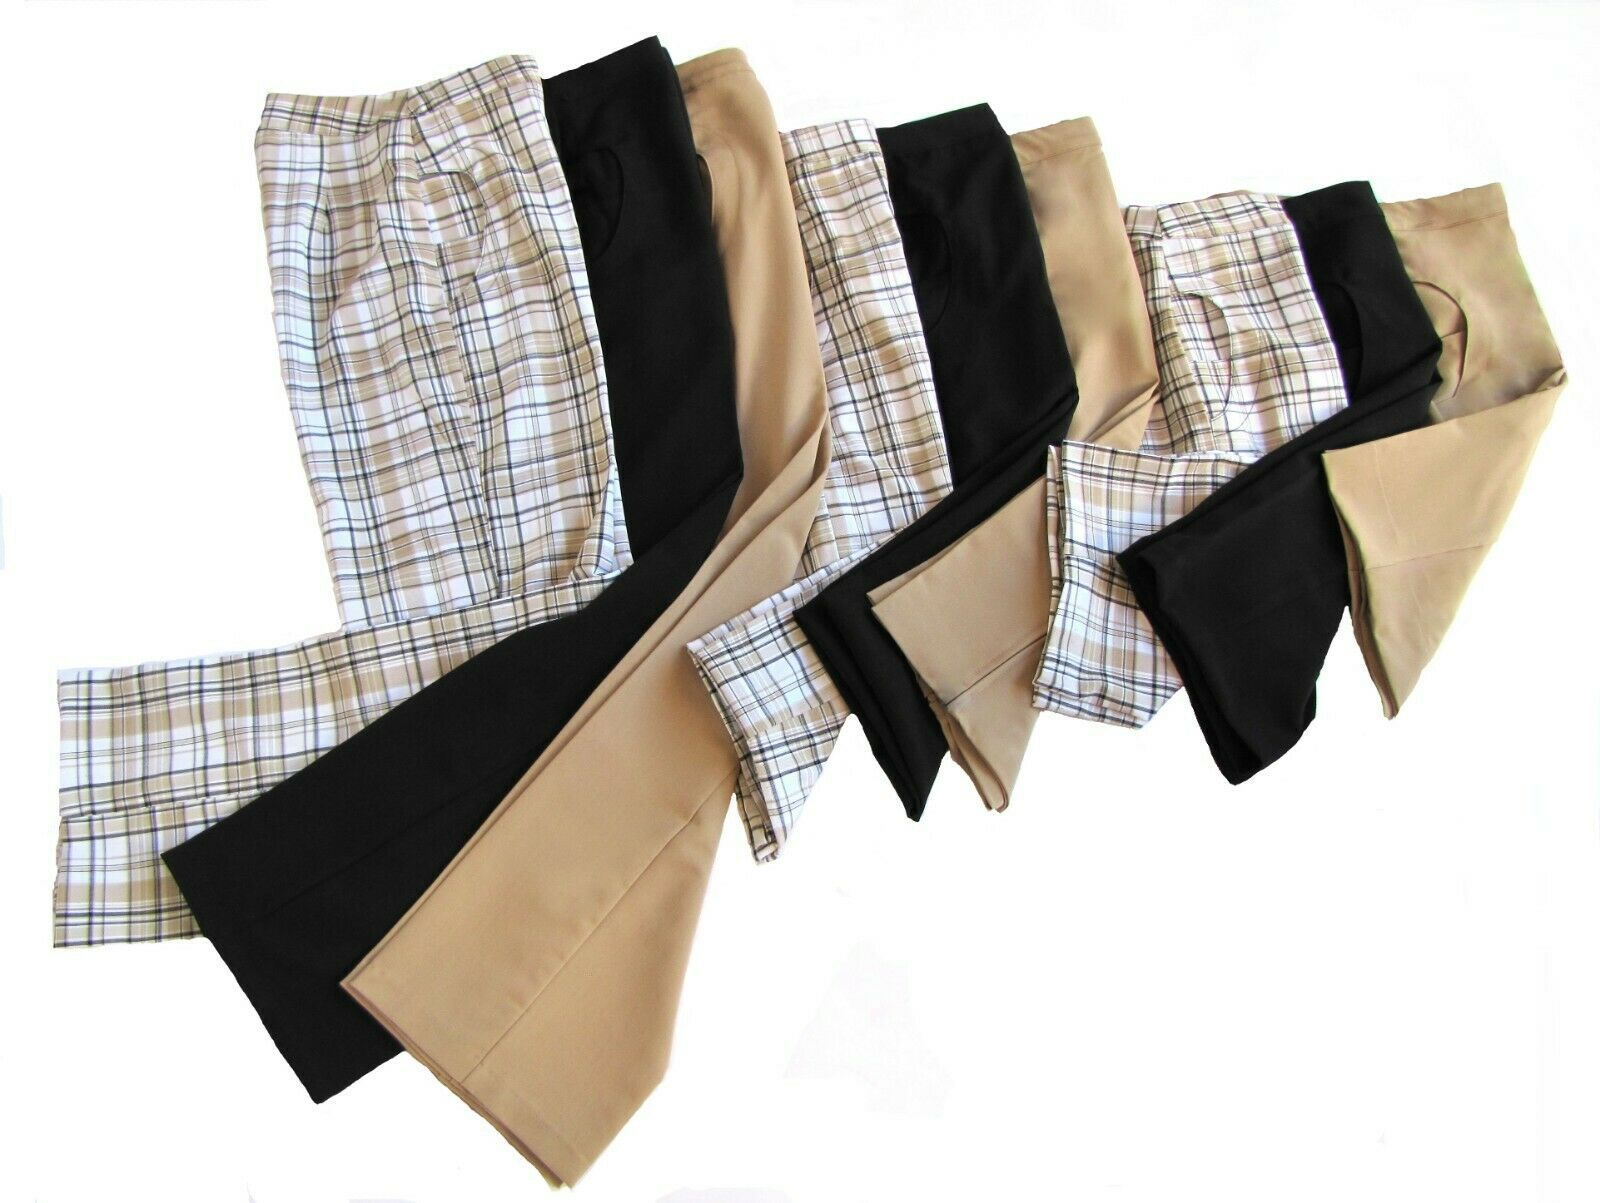 """20"""" Stylish Plaid Golf Skort with Attached Shortie - New - GoldenWear image 3"""